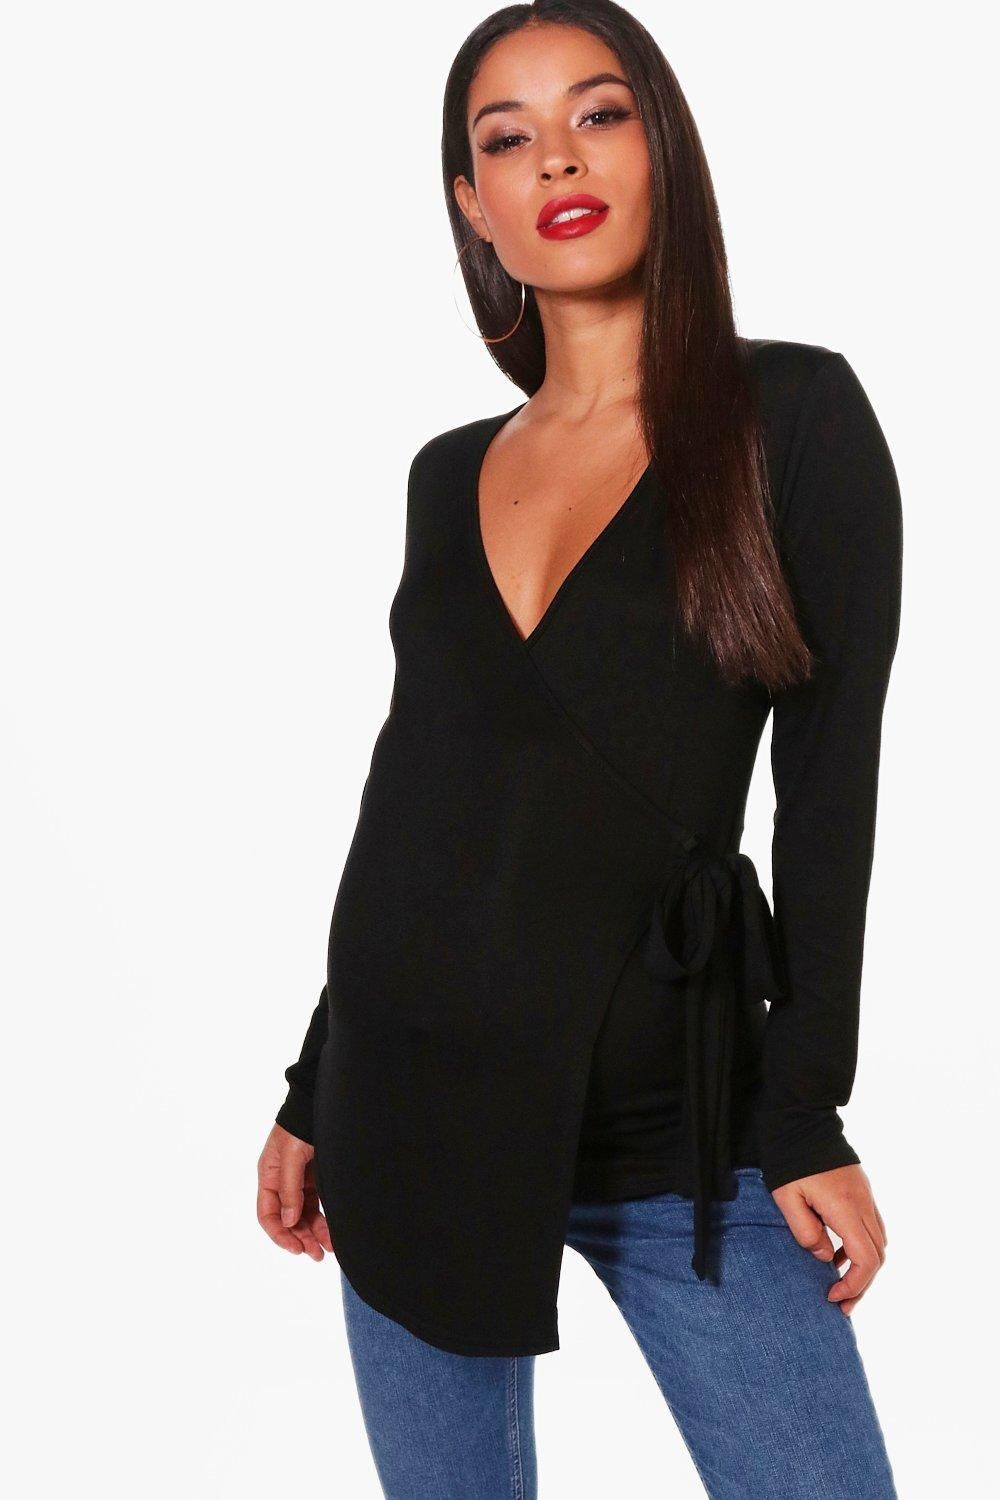 362da63e91d23 Maternity Long Sleeve Wrap Top. Hover to zoom